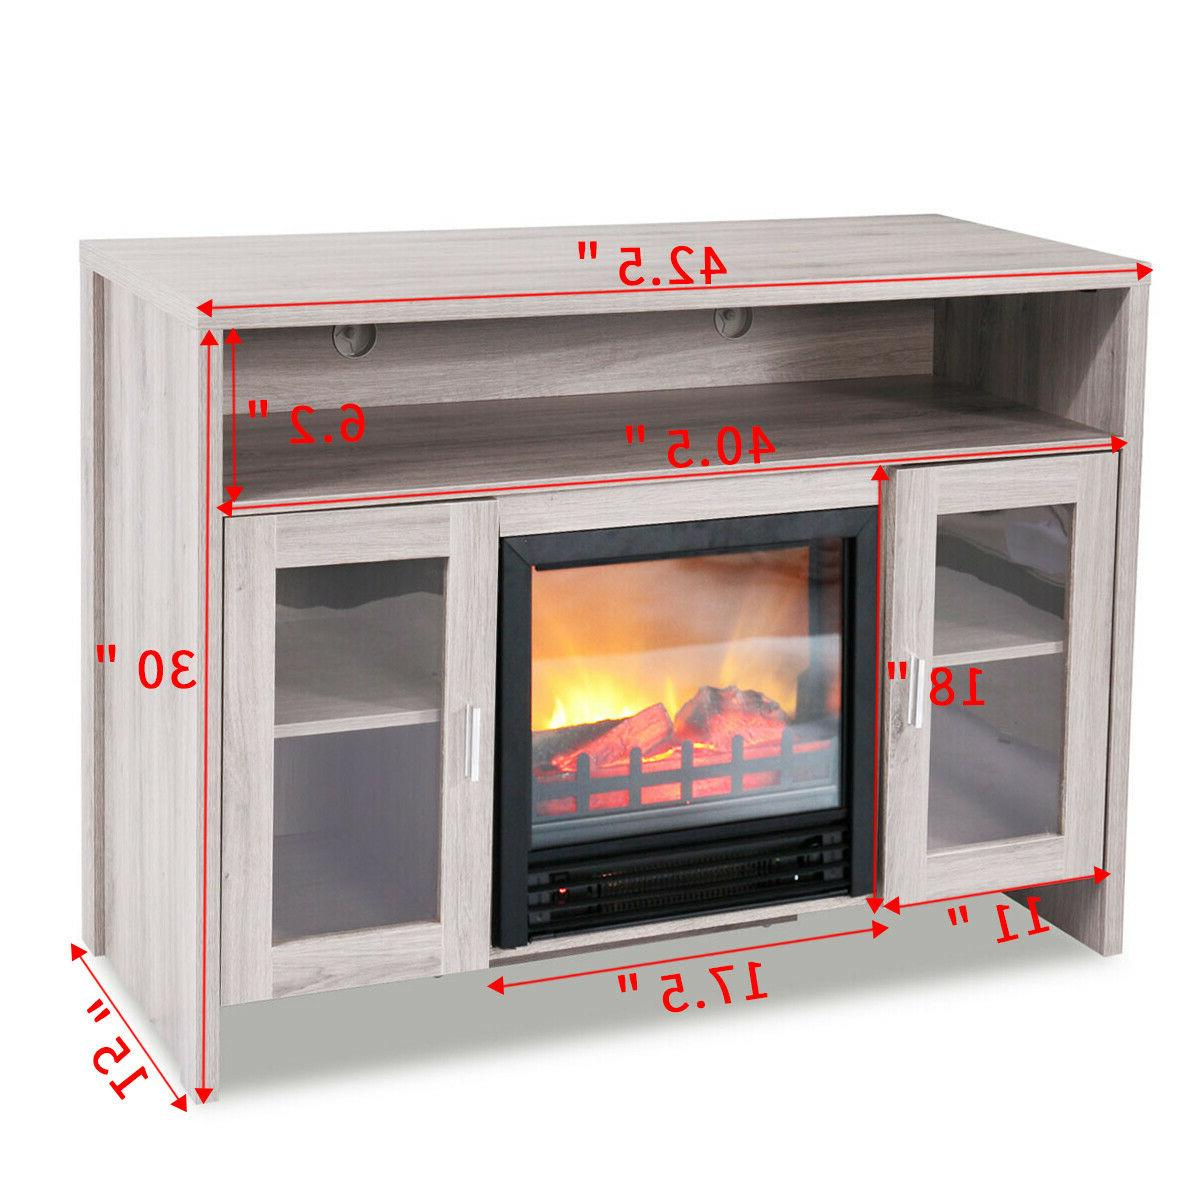 Fireplace Stand Storage Heater to